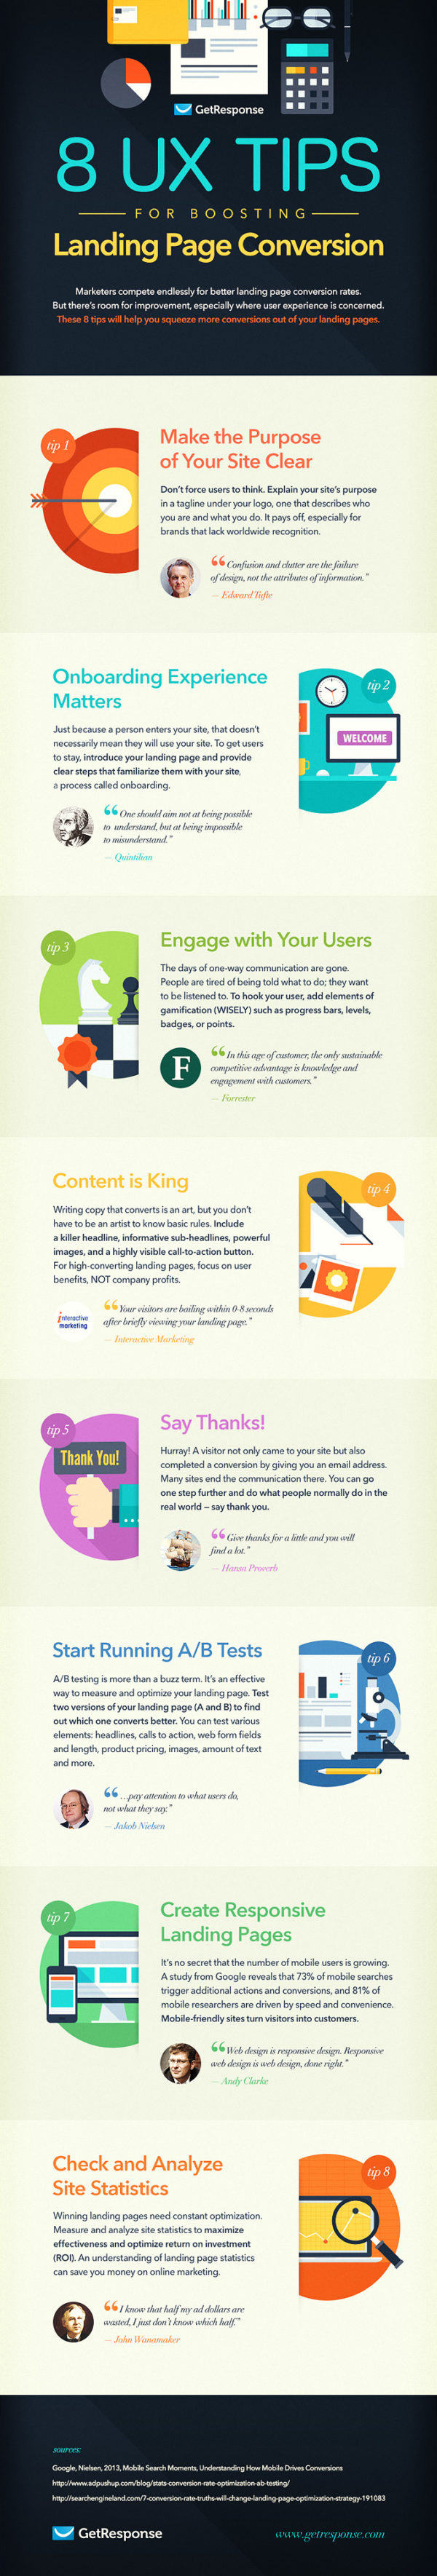 Infographic: Top Tips for Boosting Your Website Conversion Rates